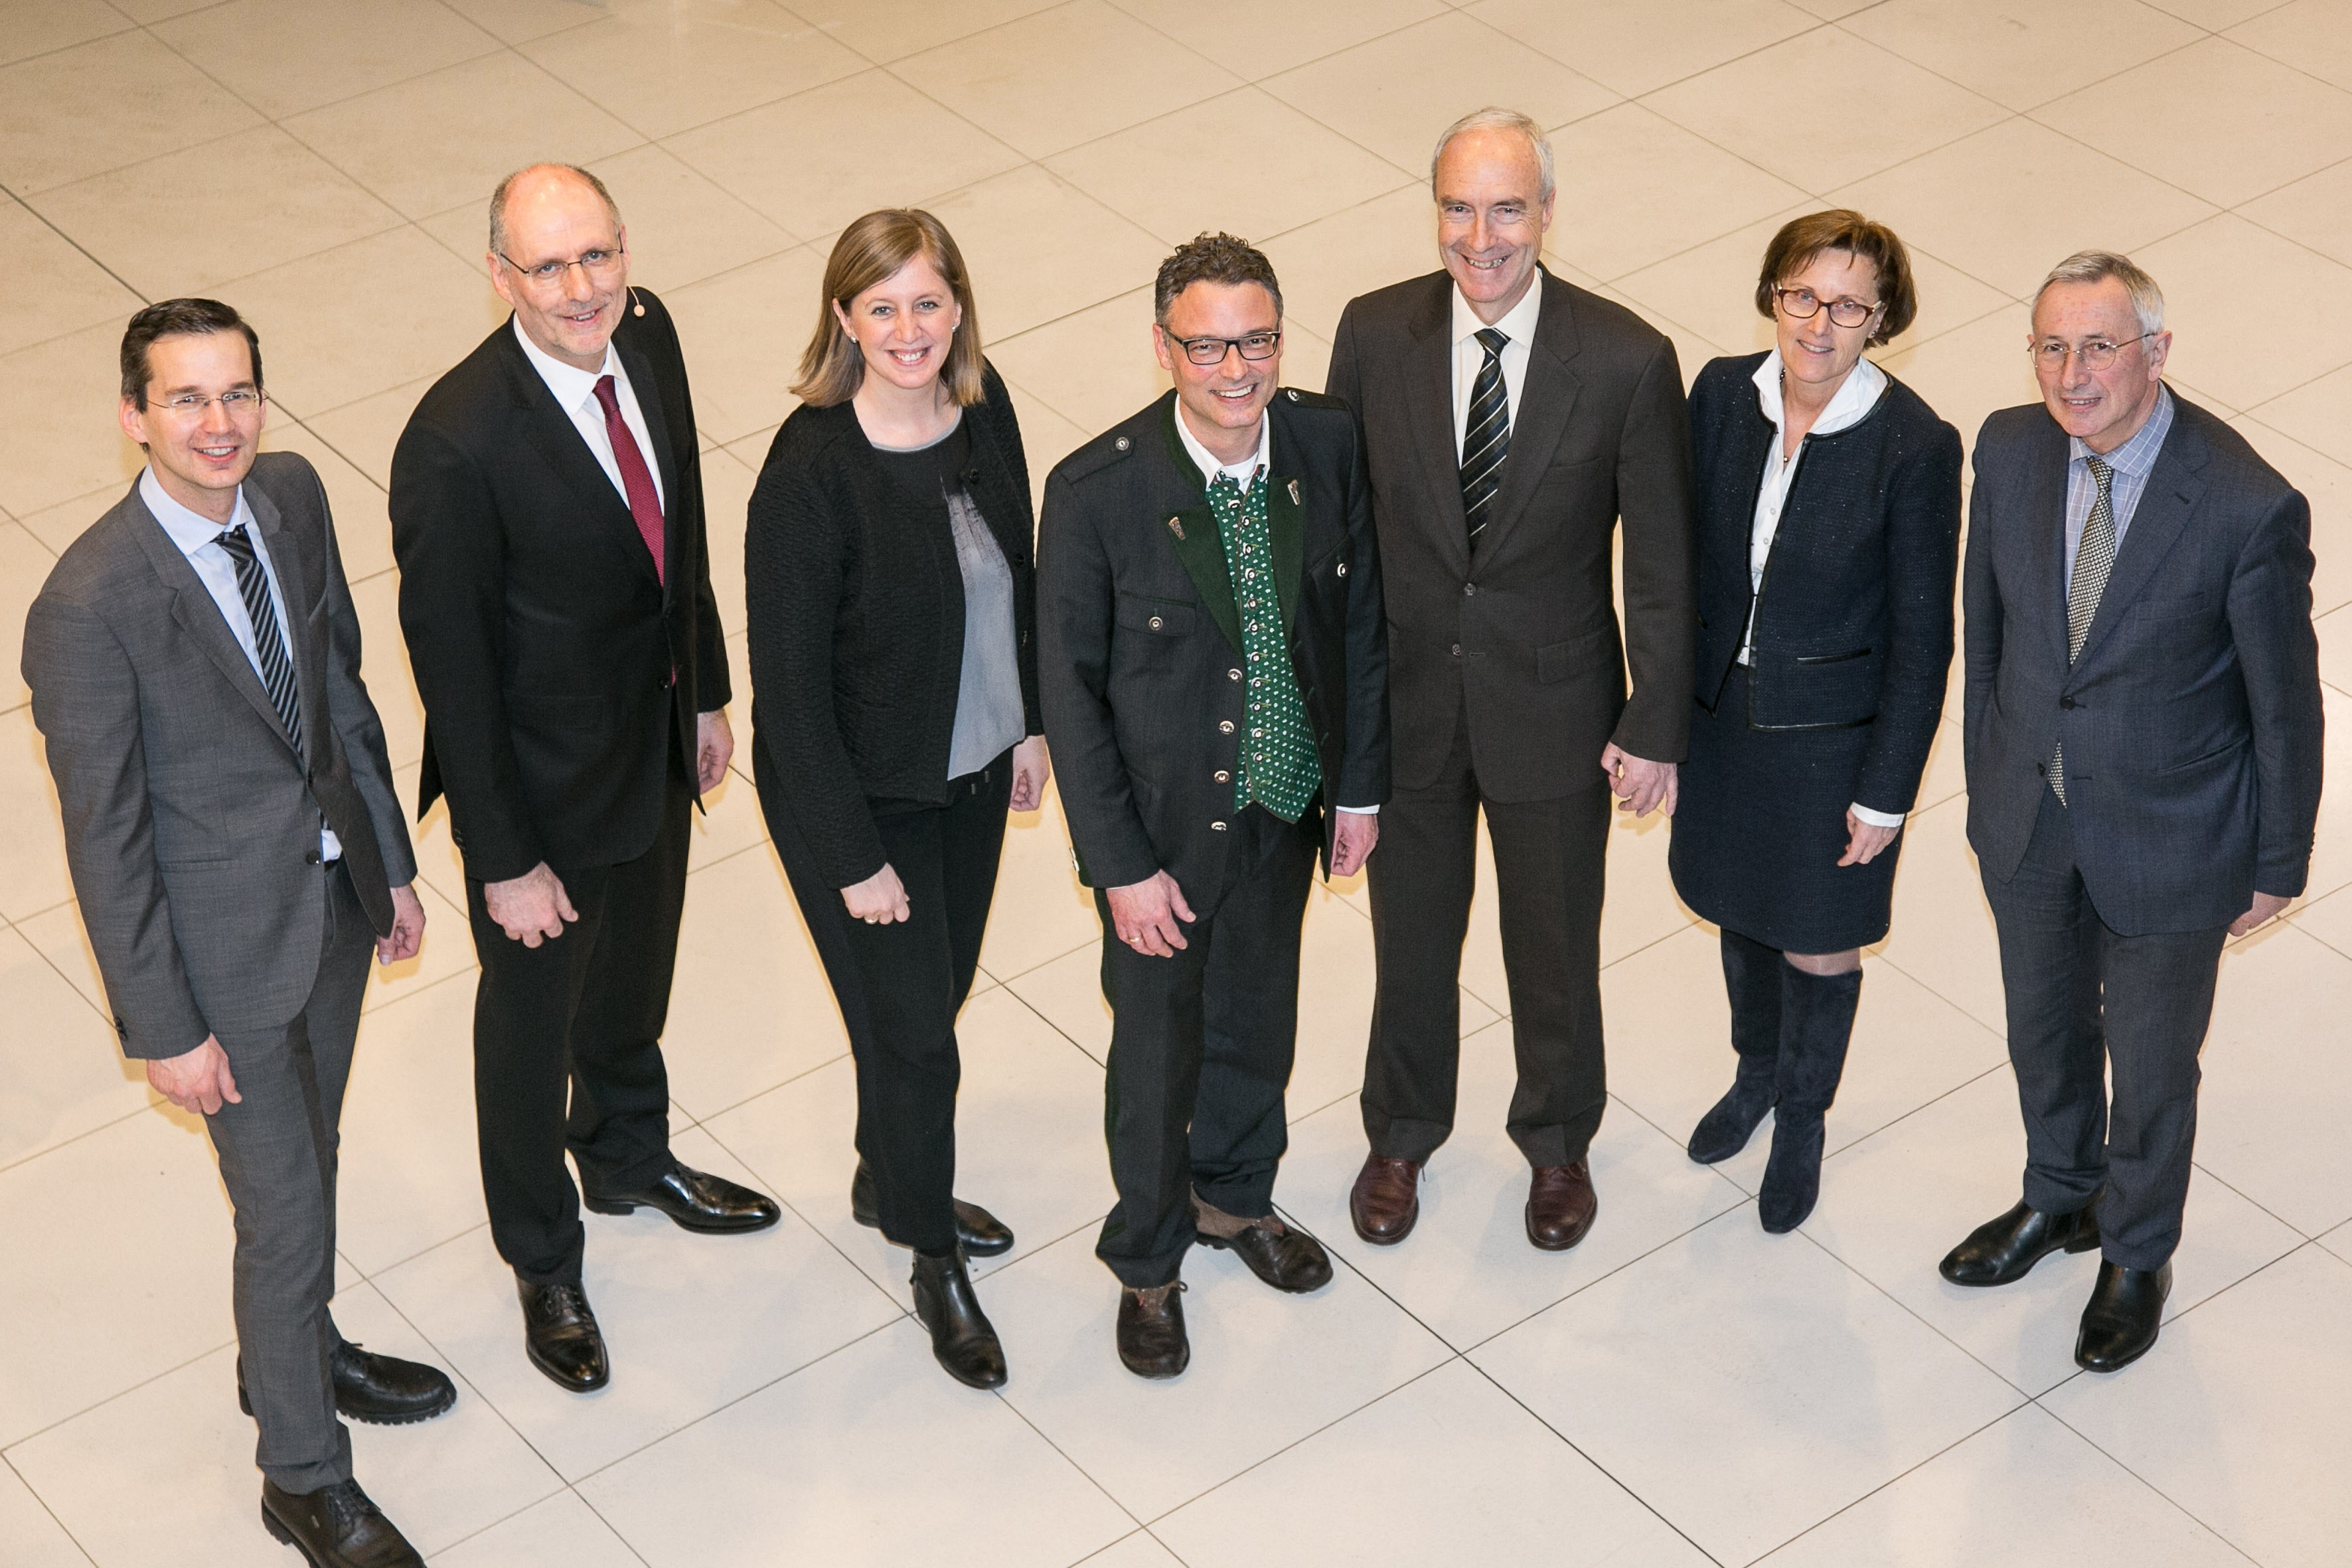 15 jahre duale studieng nge in sterreich fh joanneum for Duale studiengange